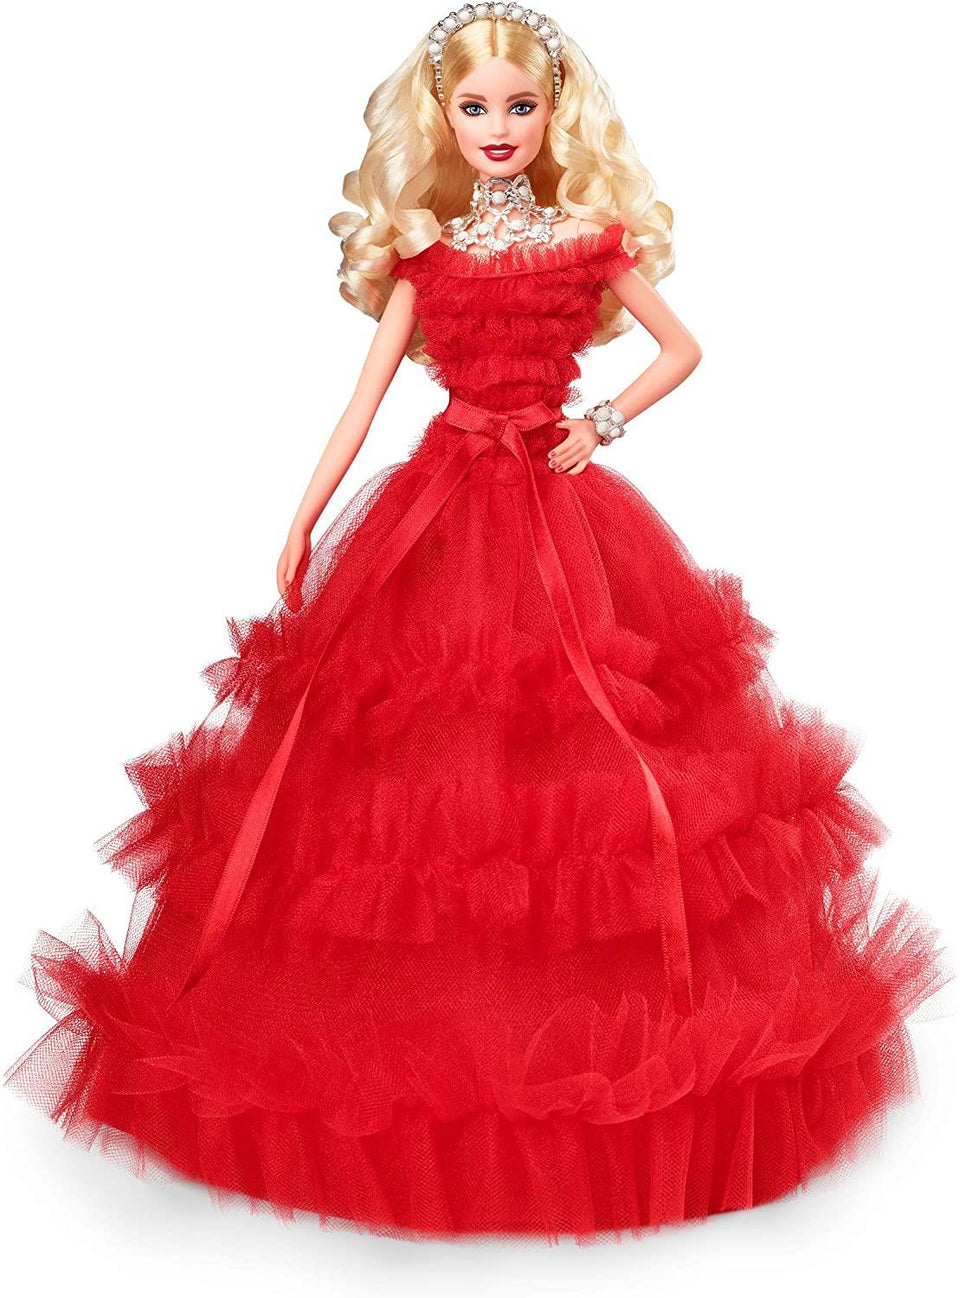 Barbie 2018 Holiday Doll Blonde Red Dress 30th Anniversary Mattel